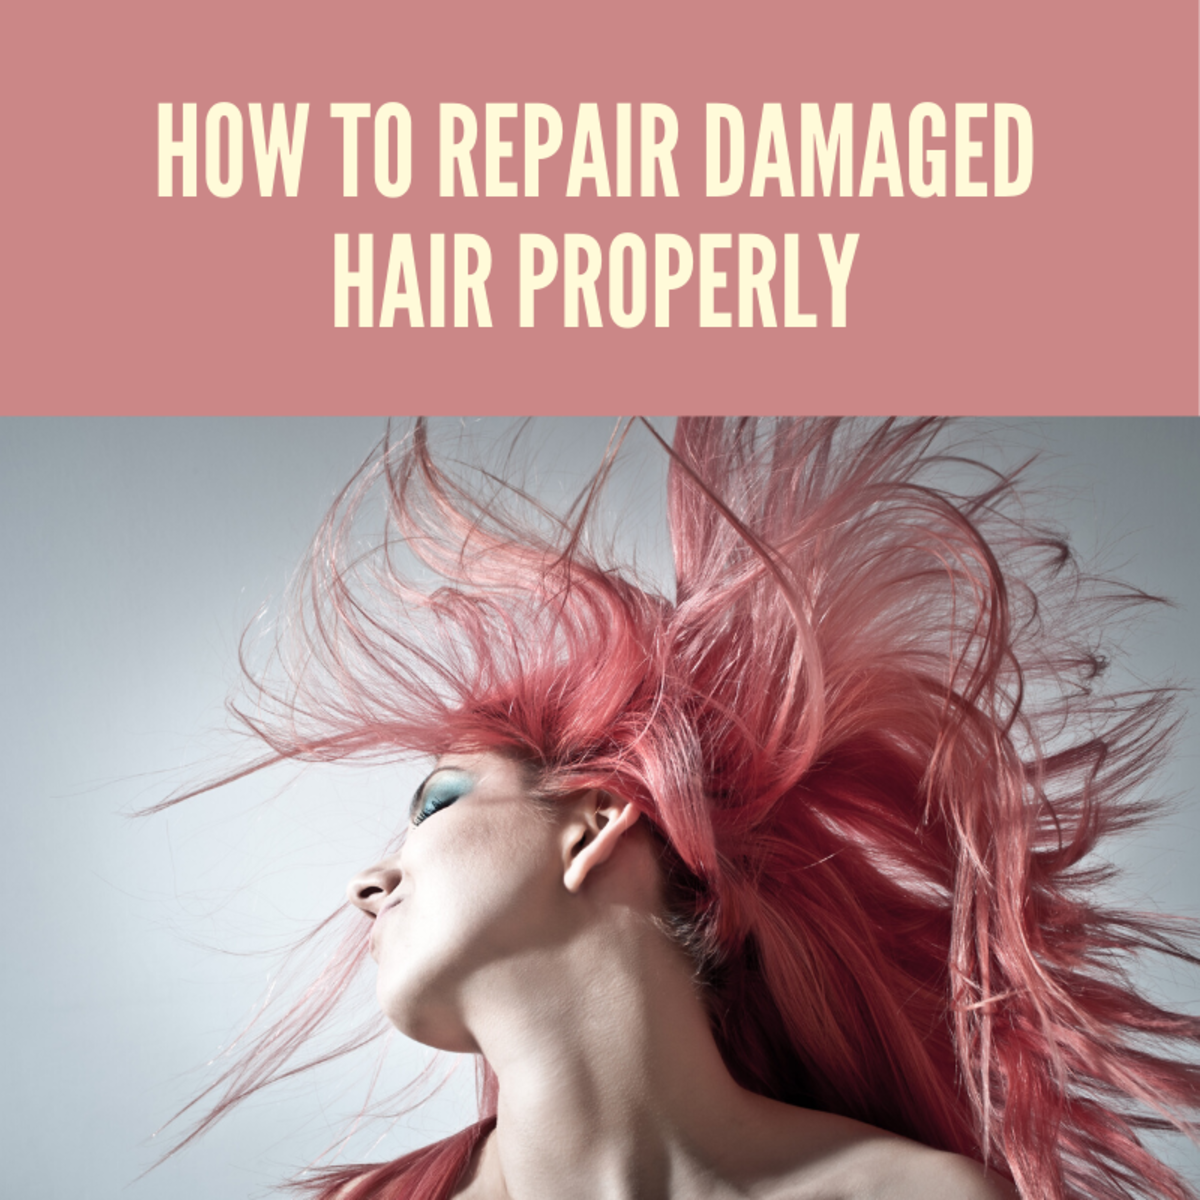 Read on to learn how to fix your damaged hair.